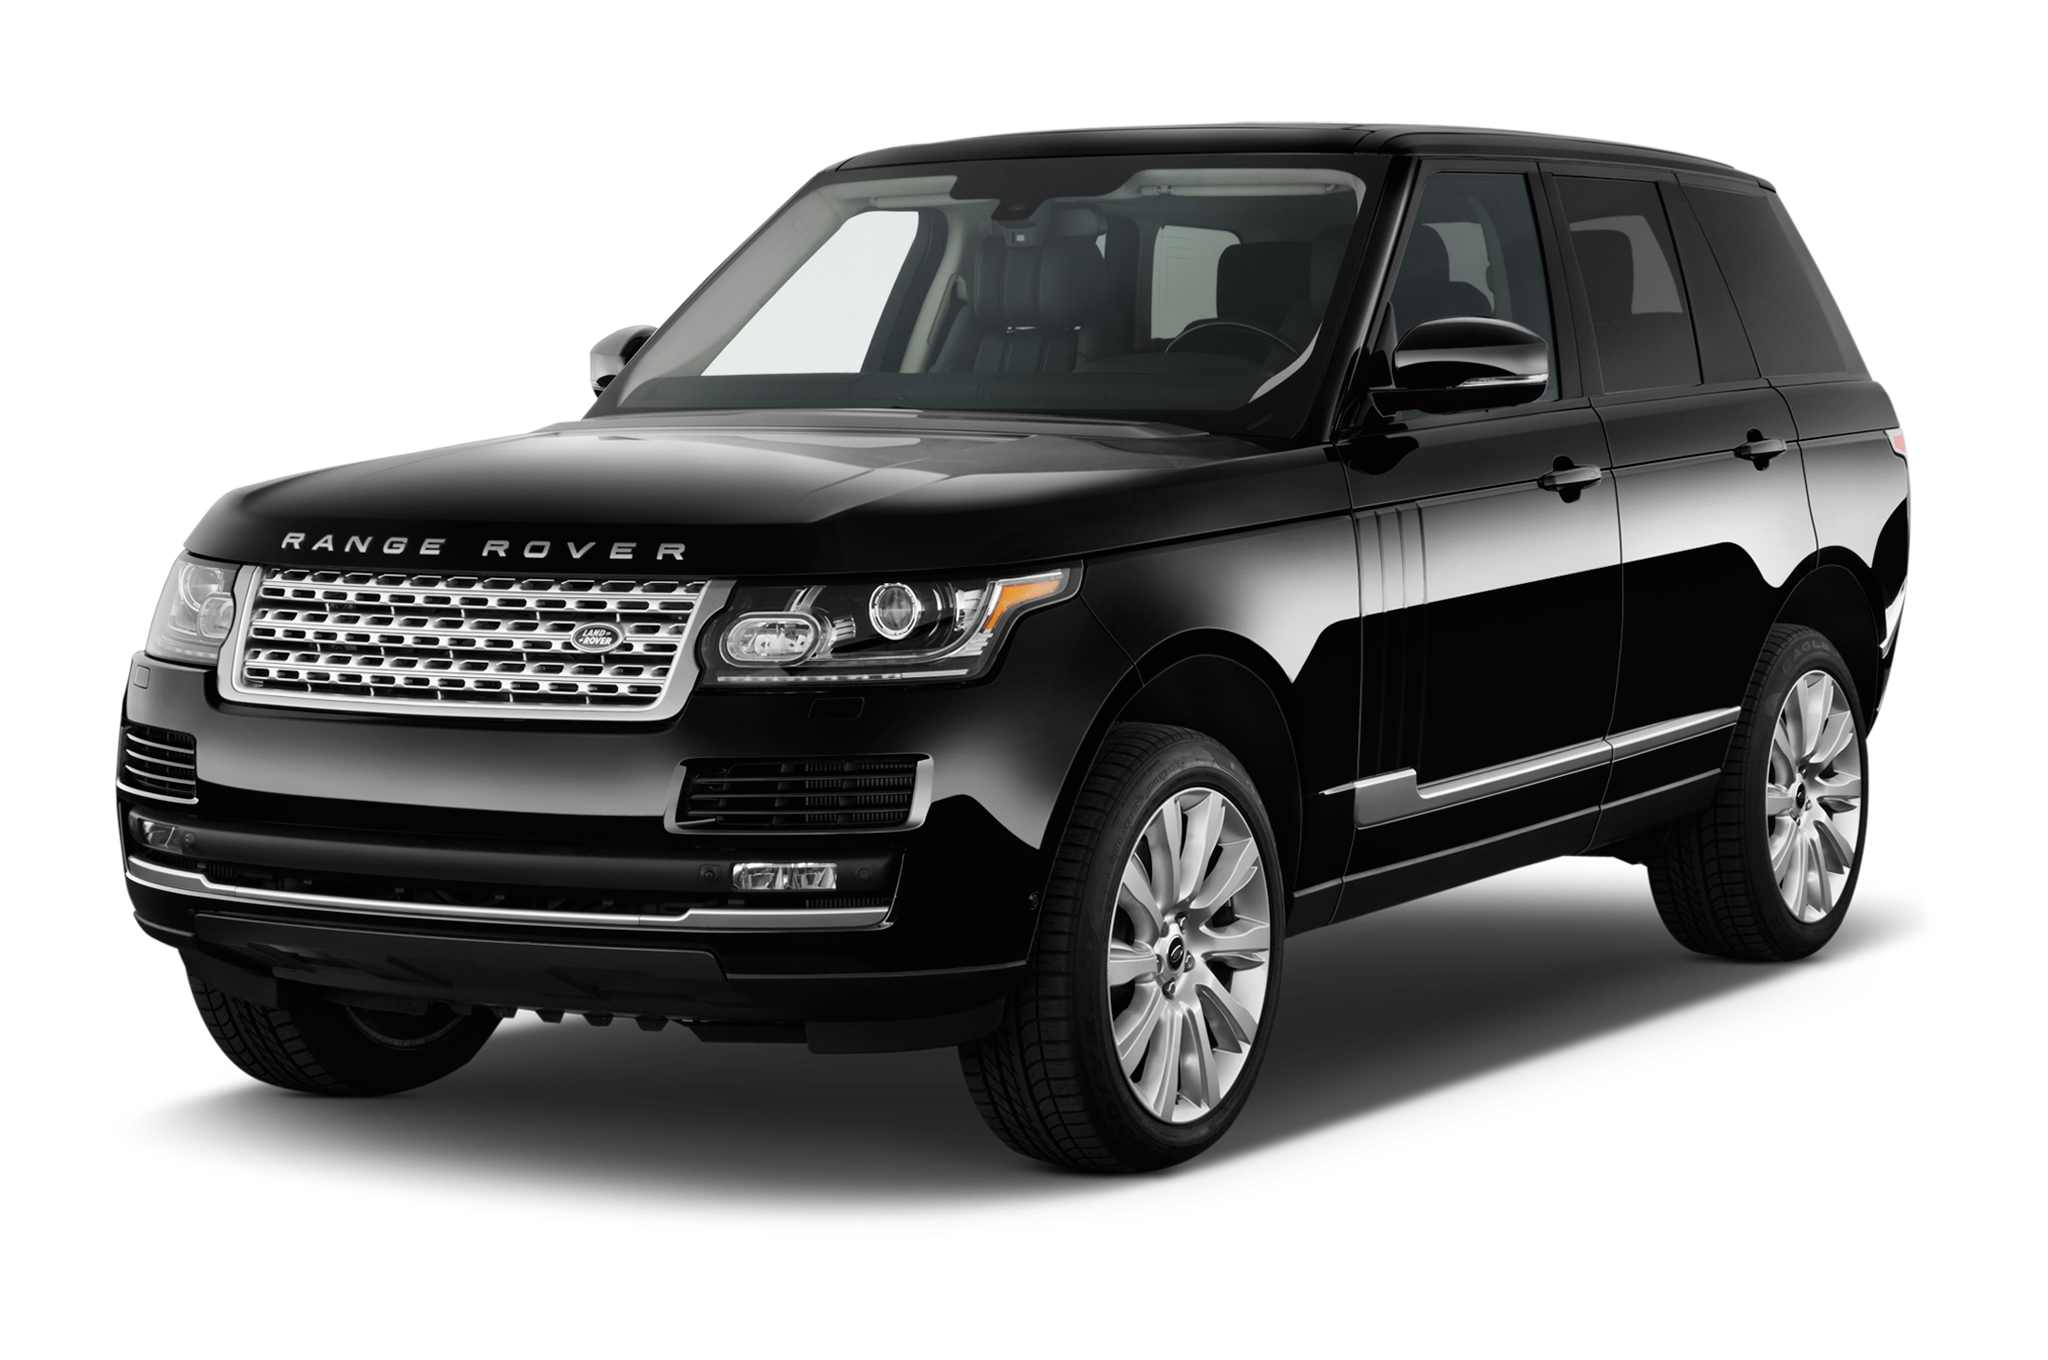 Download Land Rover PNG Image for Free.